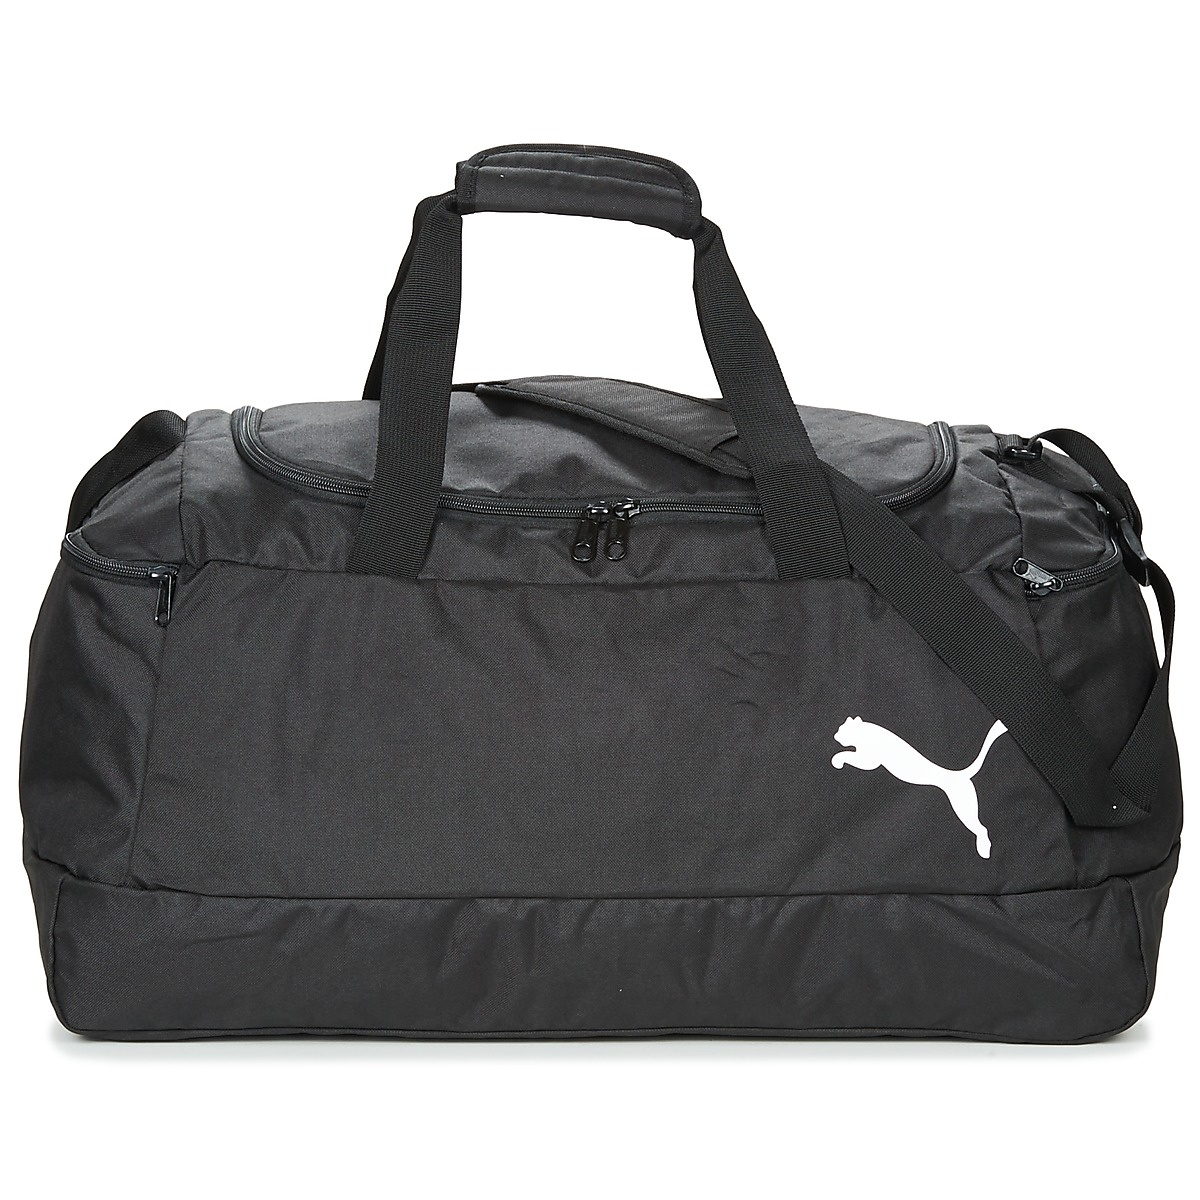 Borsa da sport donna Puma  PRO TRAINING II MEDIUM BAG  Nero